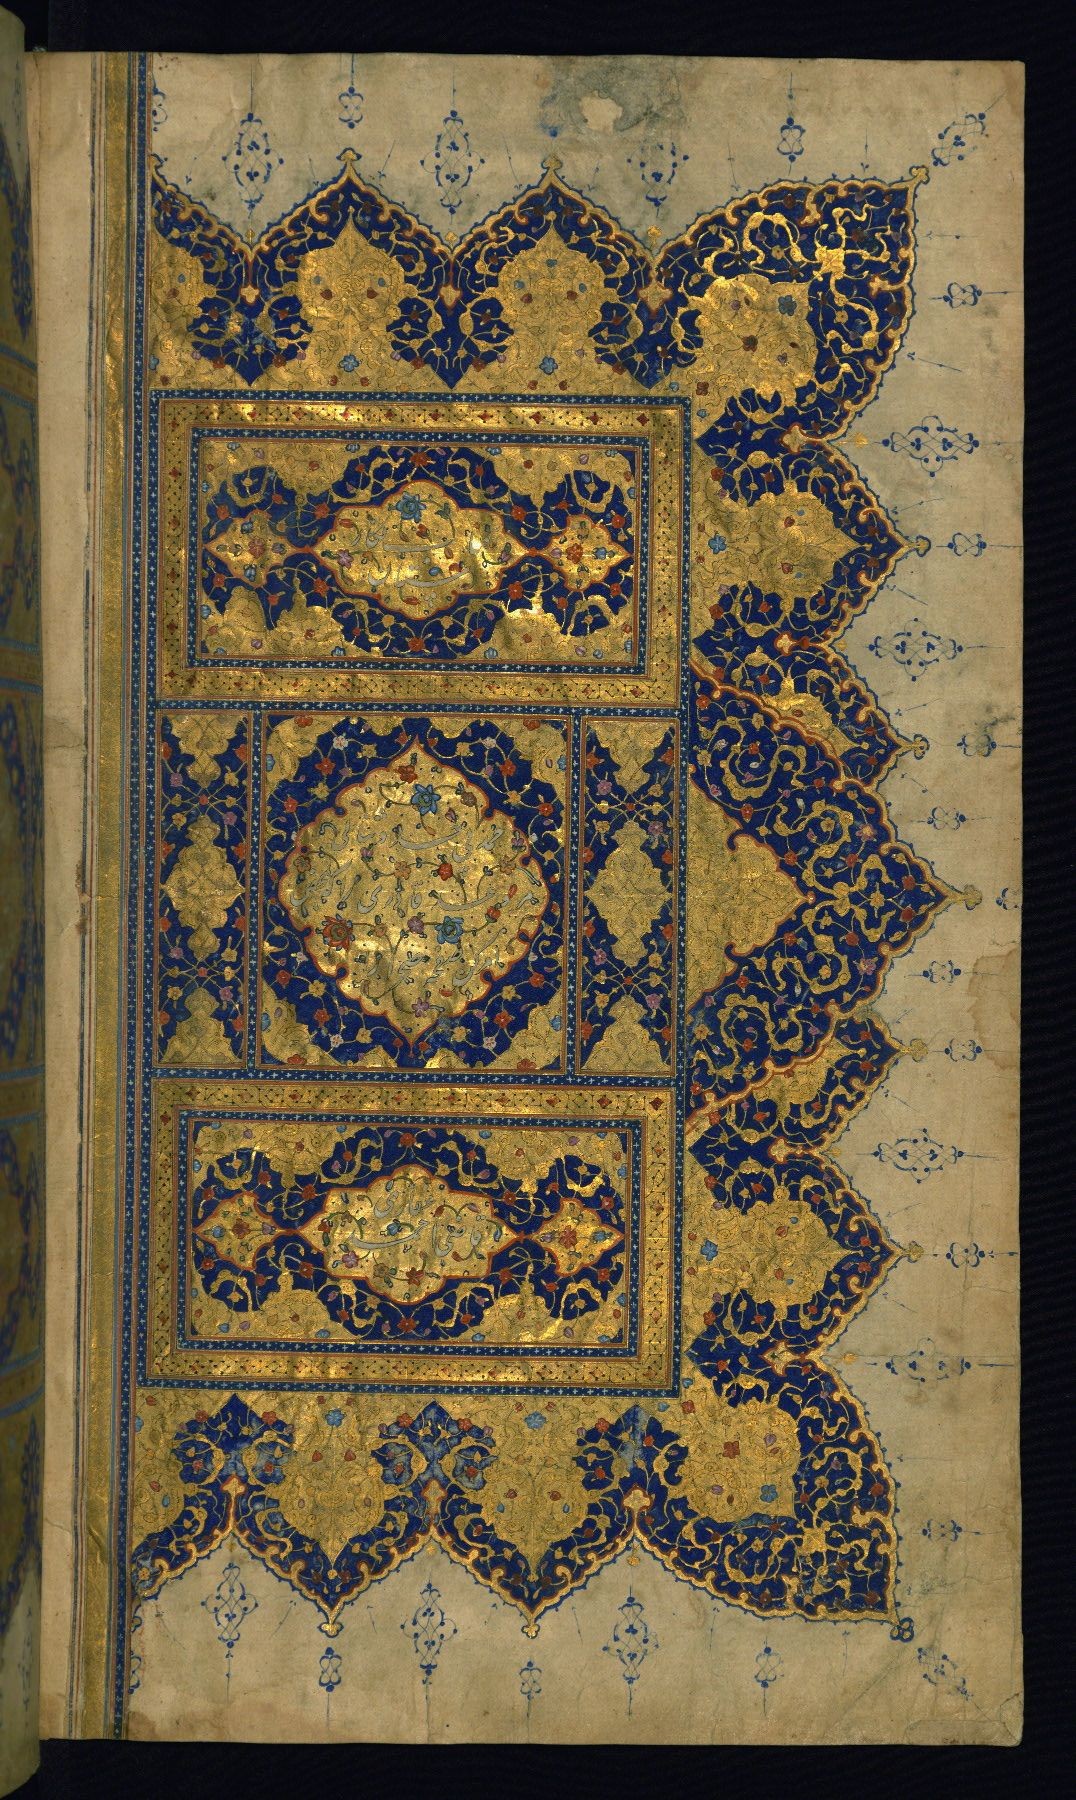 This is the right side of a double-page illuminated frontispiece giving the name of the work, Kitāb-i Nigāristān, and the author's name, Ahmad Ghaffārī.